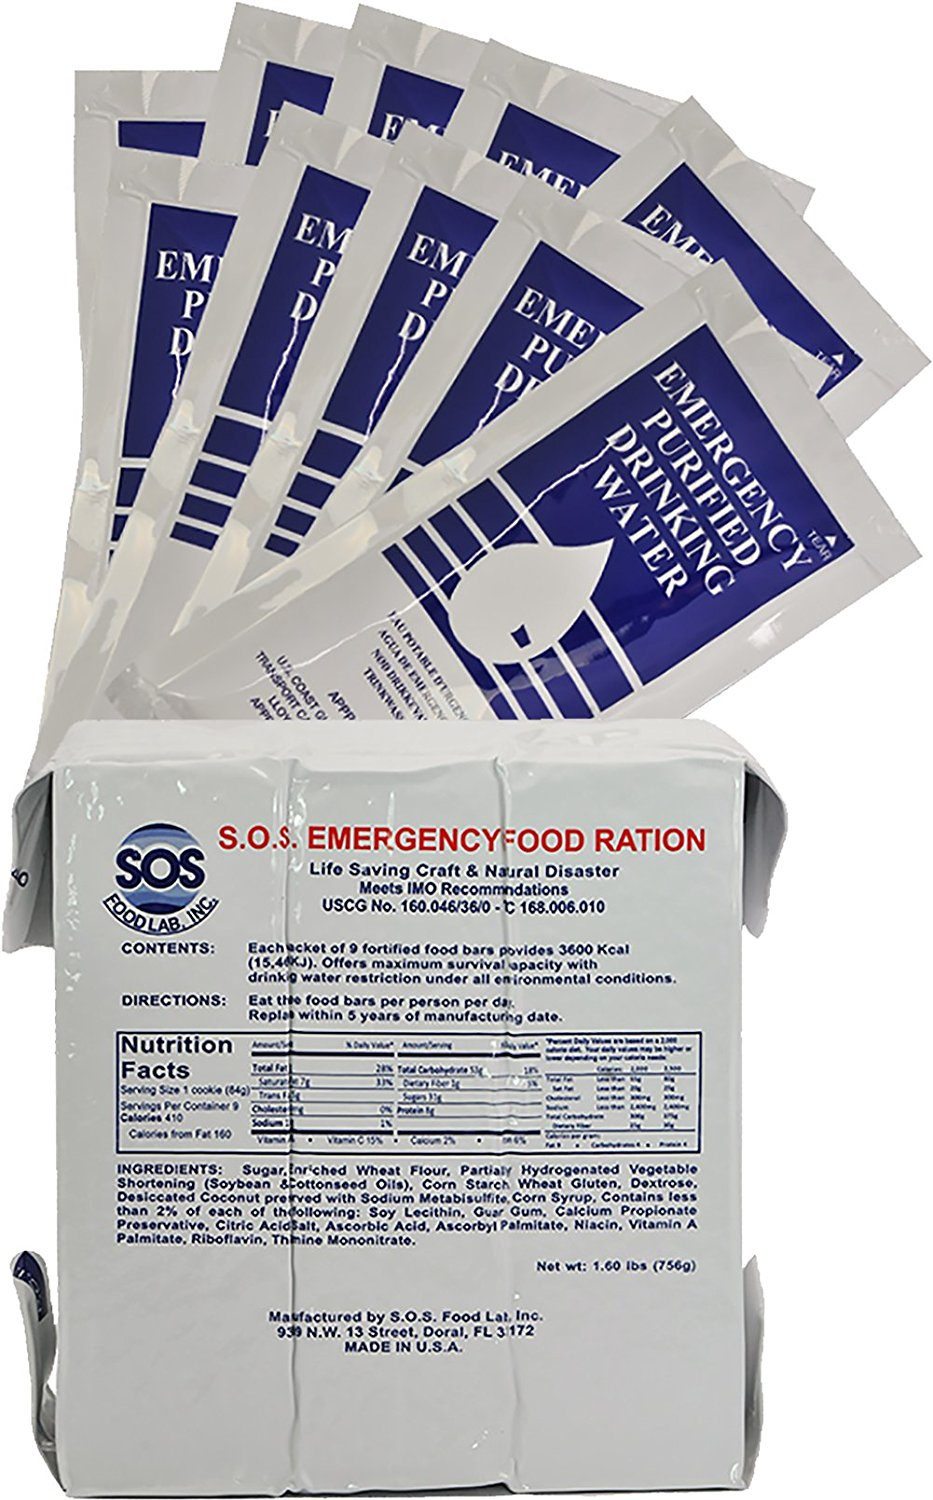 Tactical 365 Operation First Response Food and Water Rations Packs - 3 Day Pack